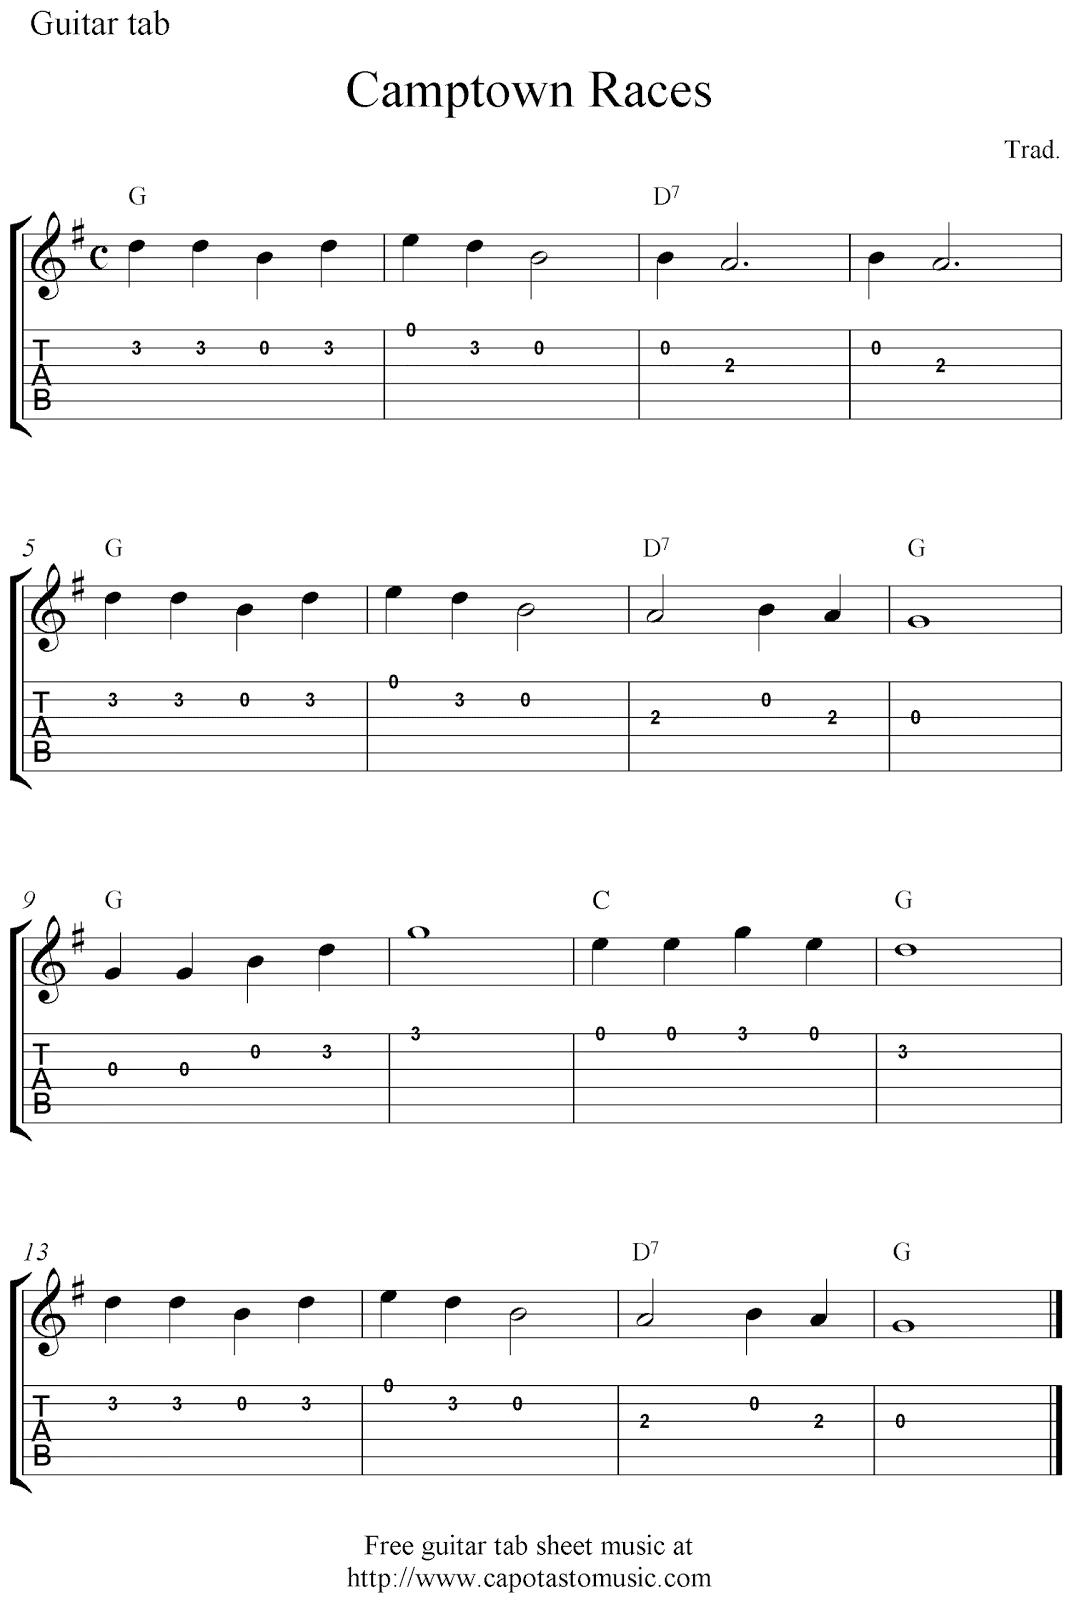 Guitar tabs and free sheet music, Camptown Races